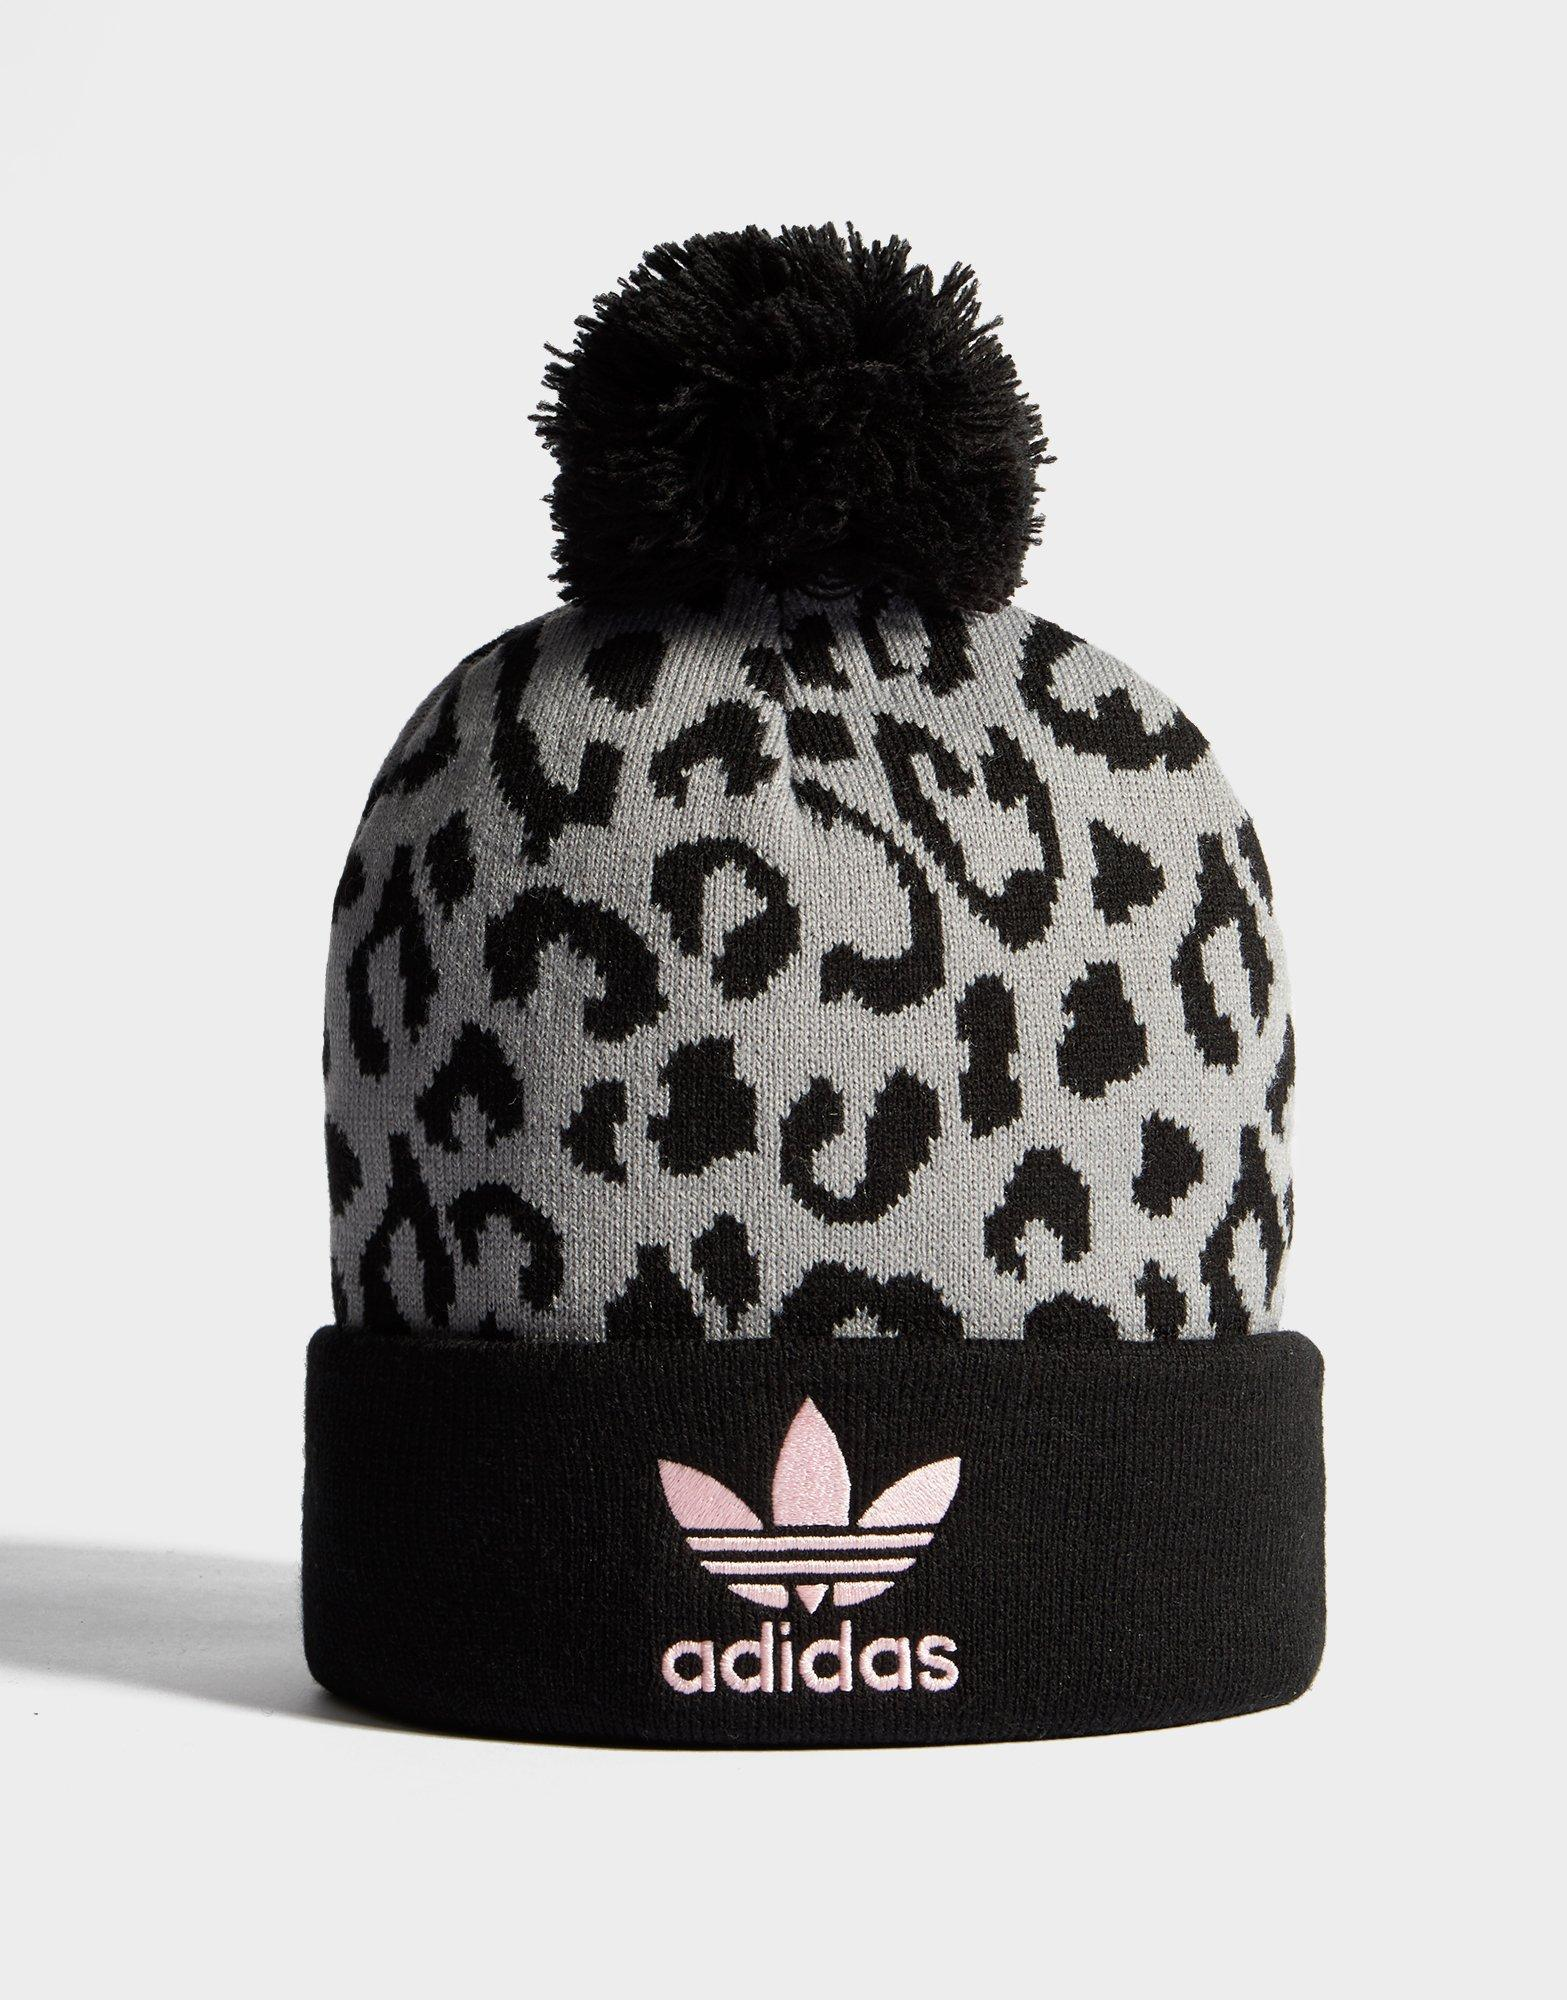 New adidas Originals Pom Leopard Beanie Black